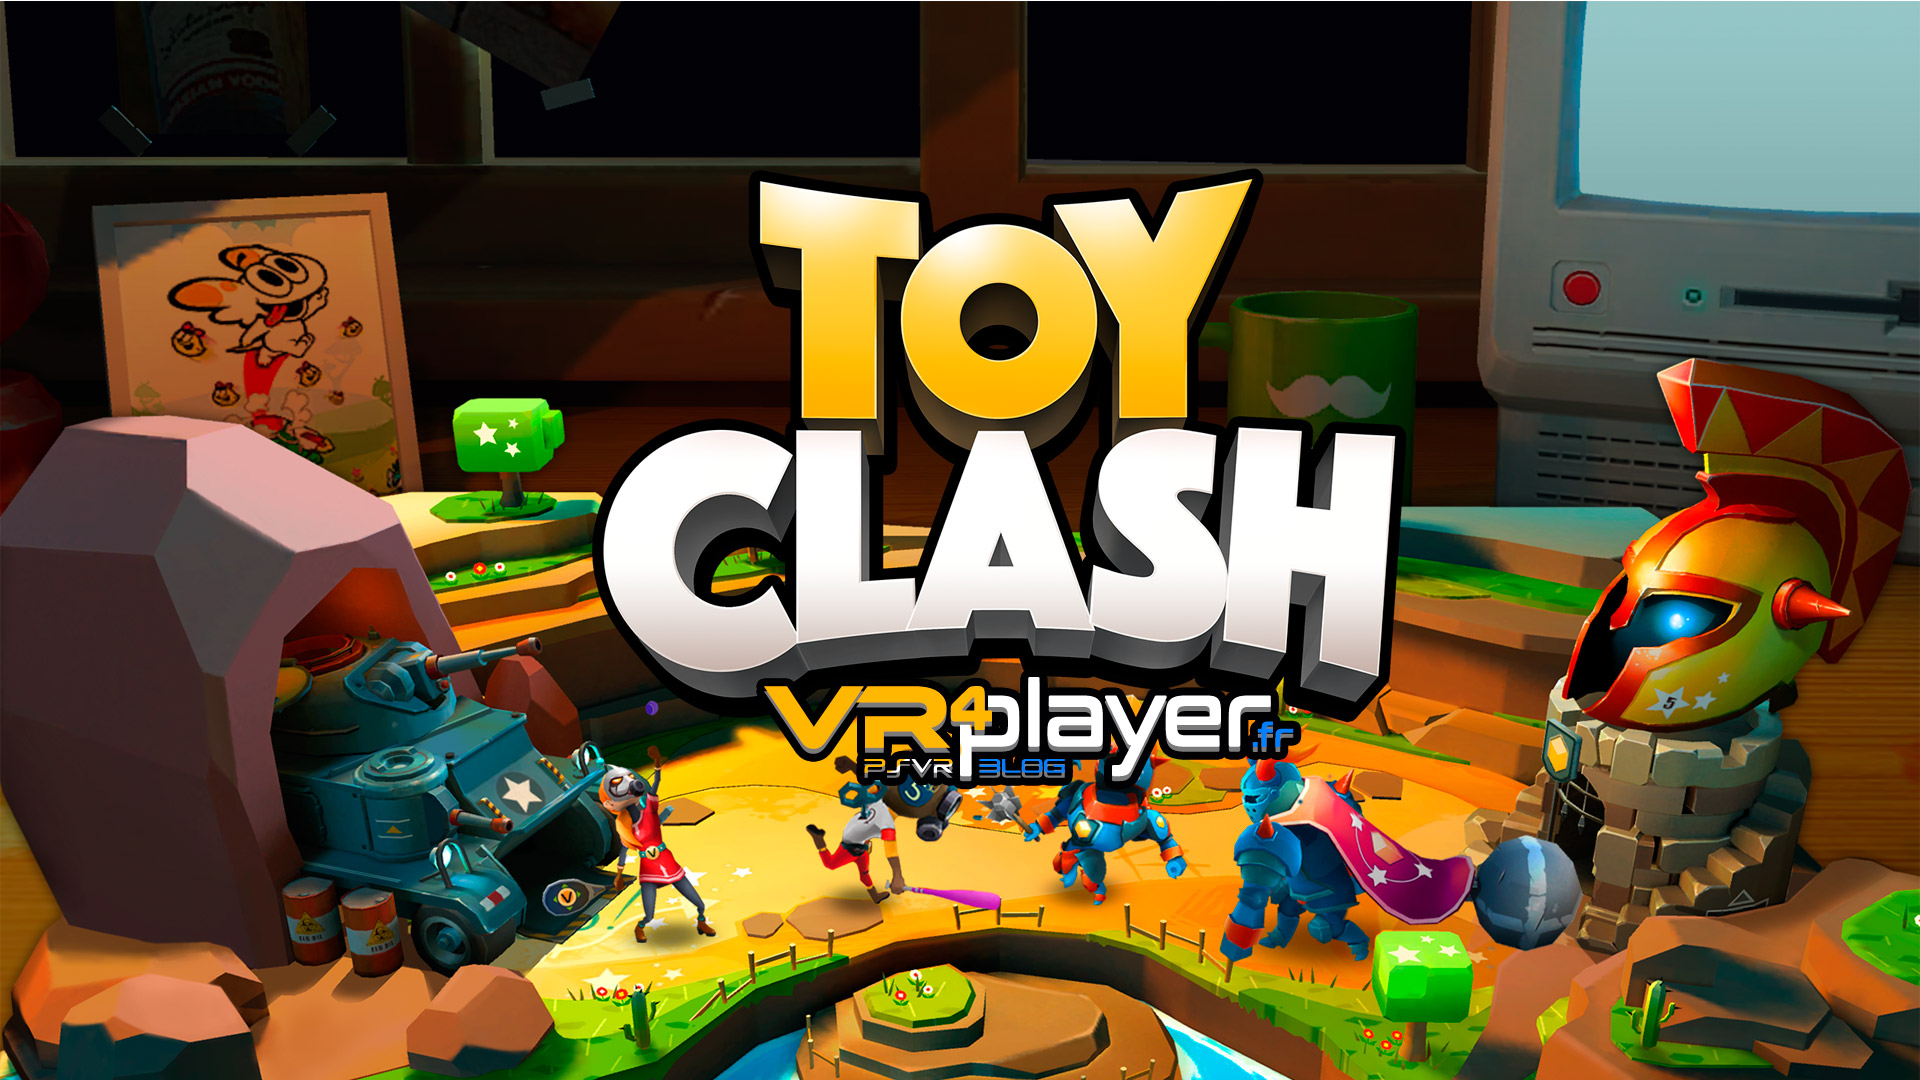 Toy Clash PlayStation VR VR4player